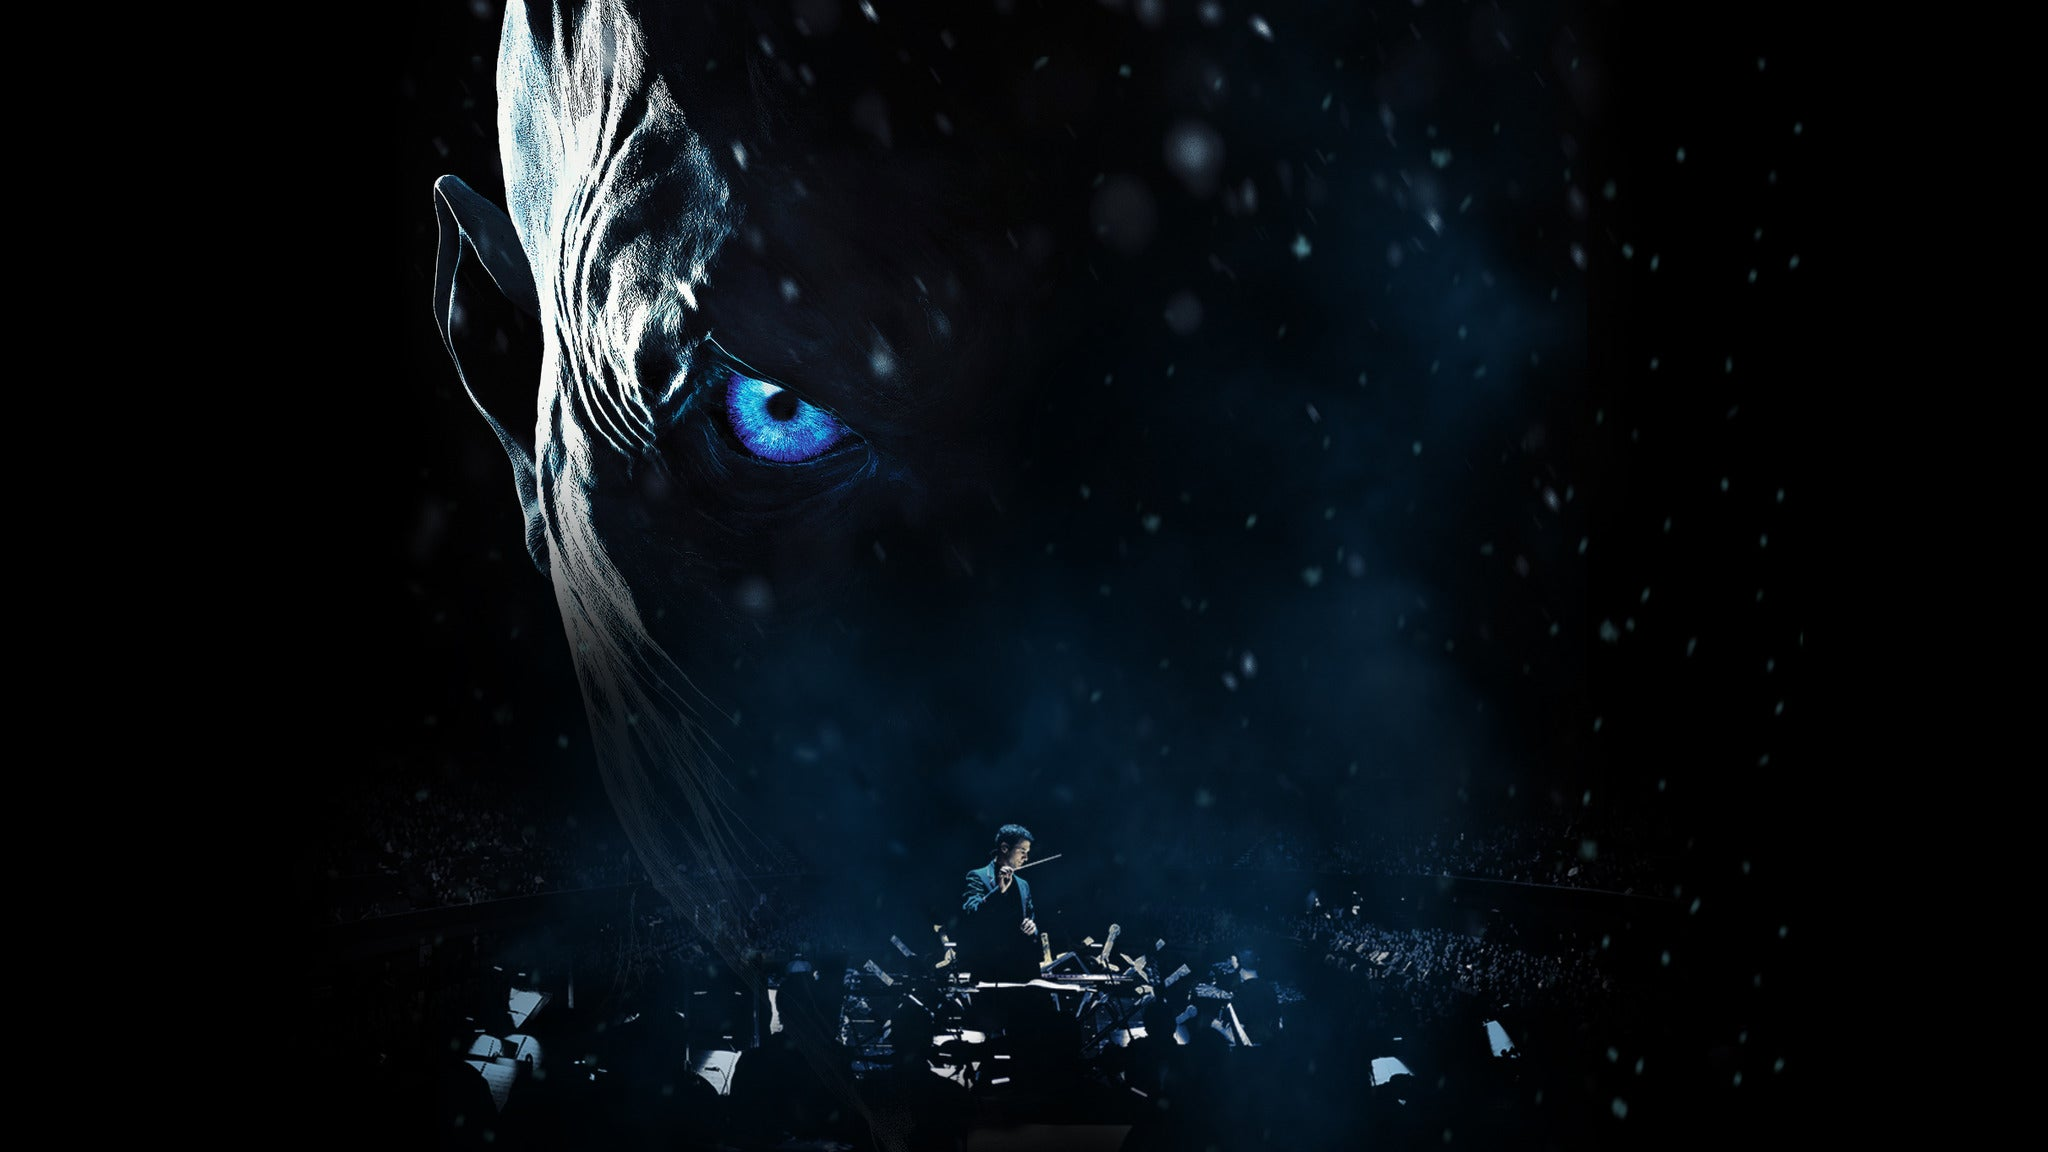 Game of Thrones Live Concert Experience - San Diego, CA 92182